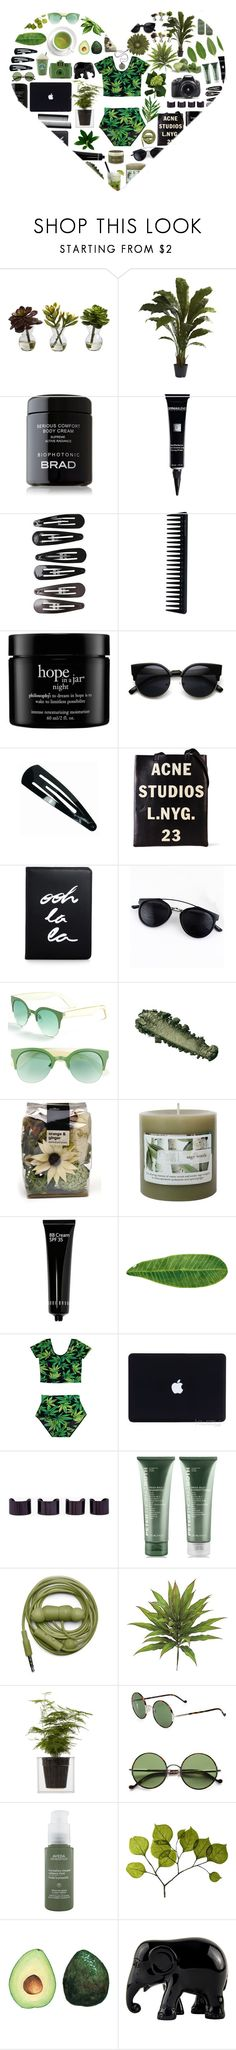 """""""Tropical Summer Breeze"""" by stelbell ❤ liked on Polyvore featuring Nearly Natural, Dermablend, Clips, GHD, philosophy, Acne Studios, Kate Spade, FE NY, Caipirinha and Threshold"""